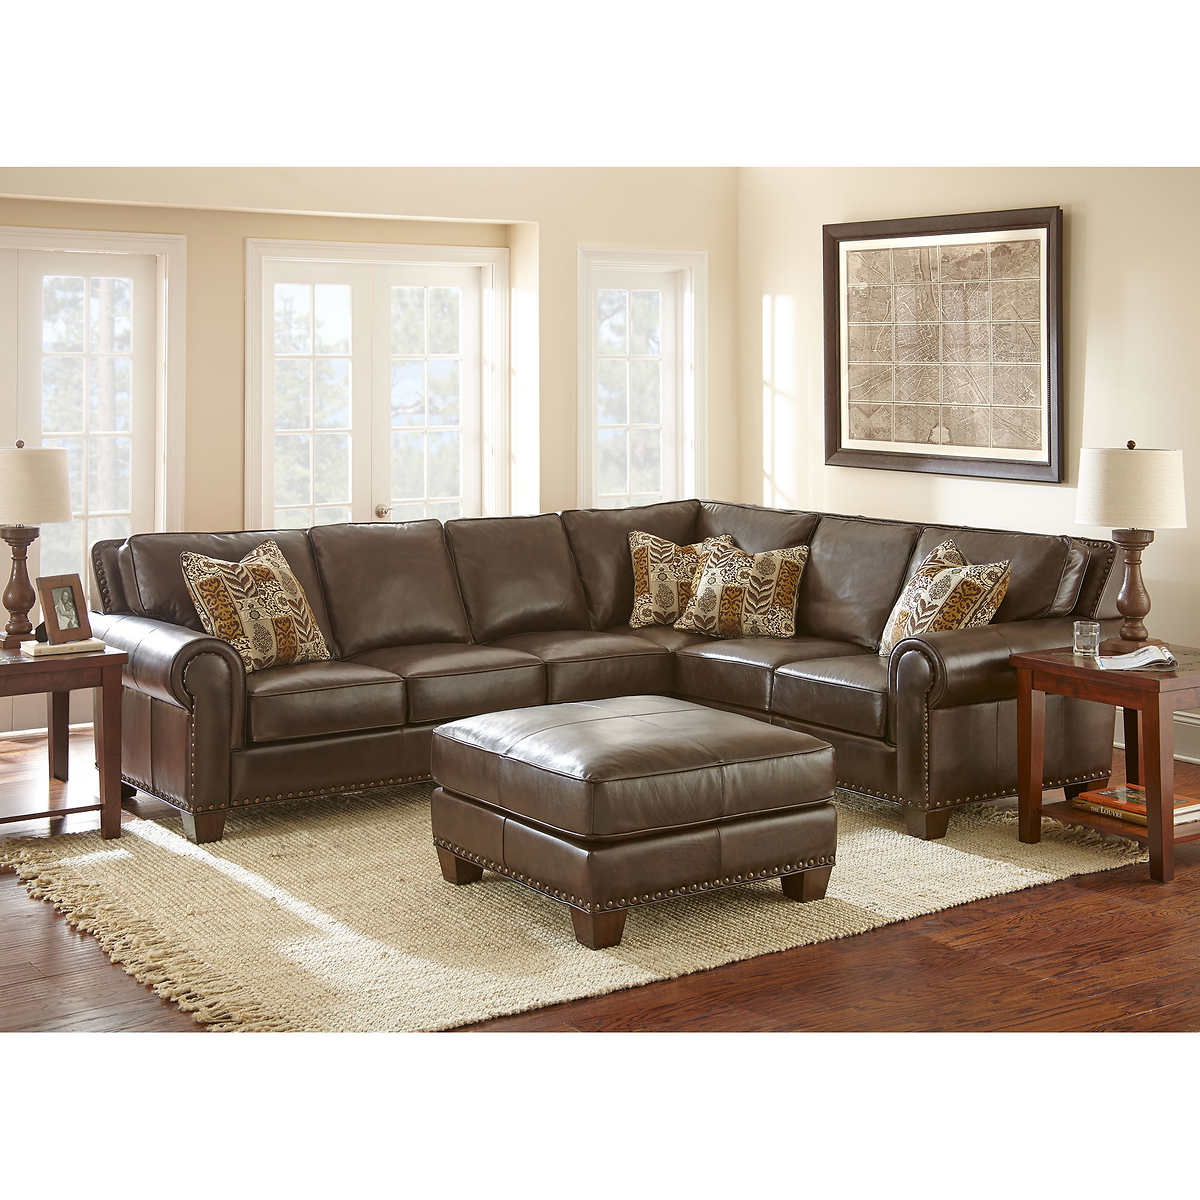 Gavin Top Grain Leather Sectional and Ottoman